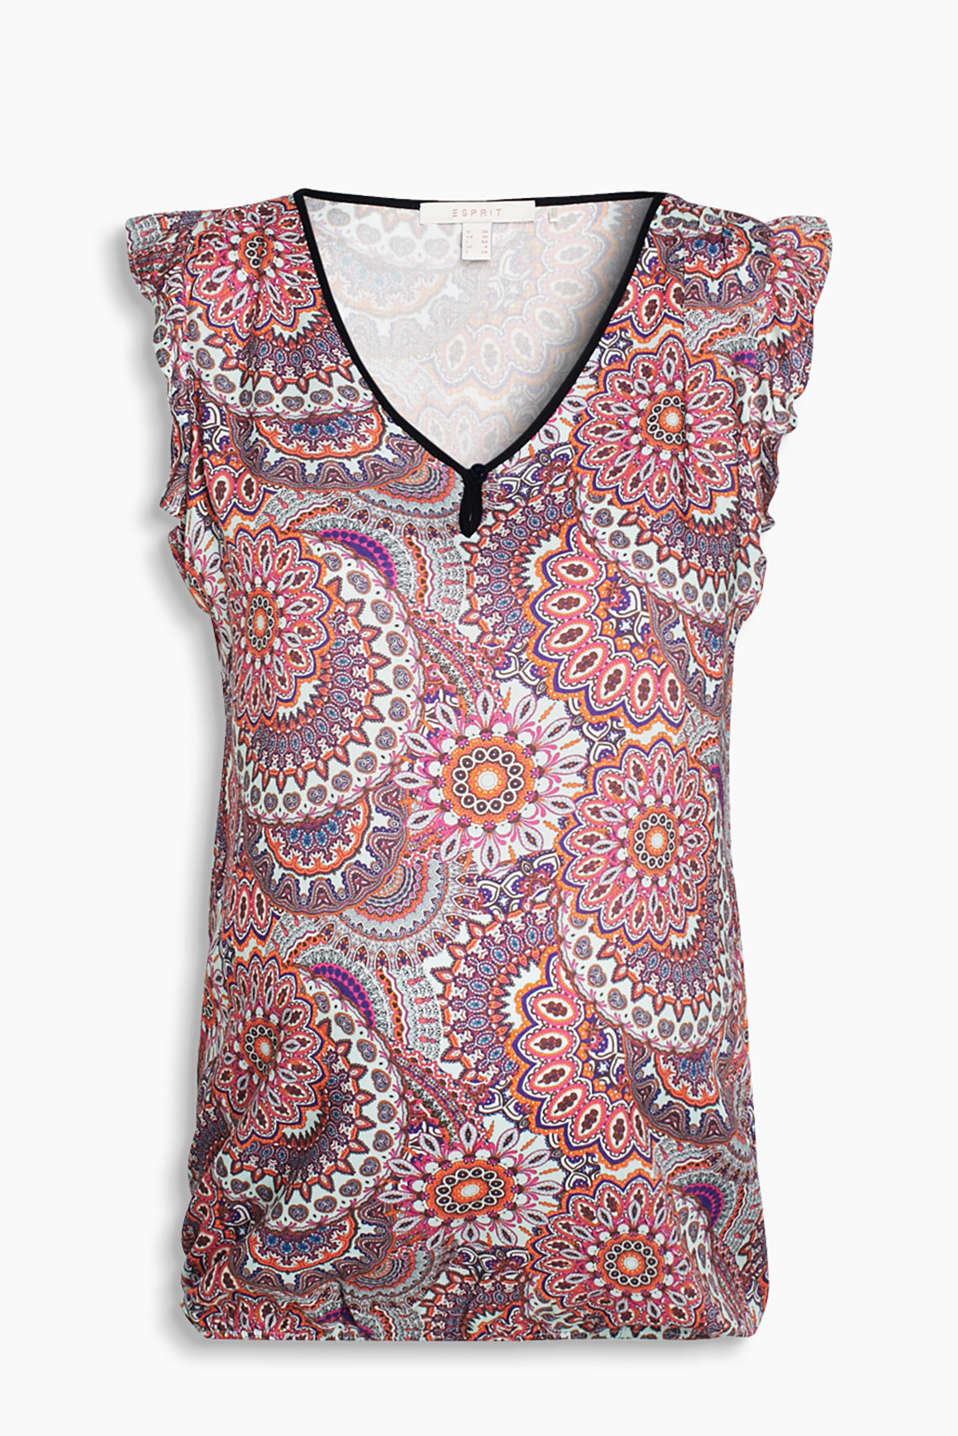 Floaty blouse top with an Oriental pattern, accentuated neckline and narrow, elasticated hem border